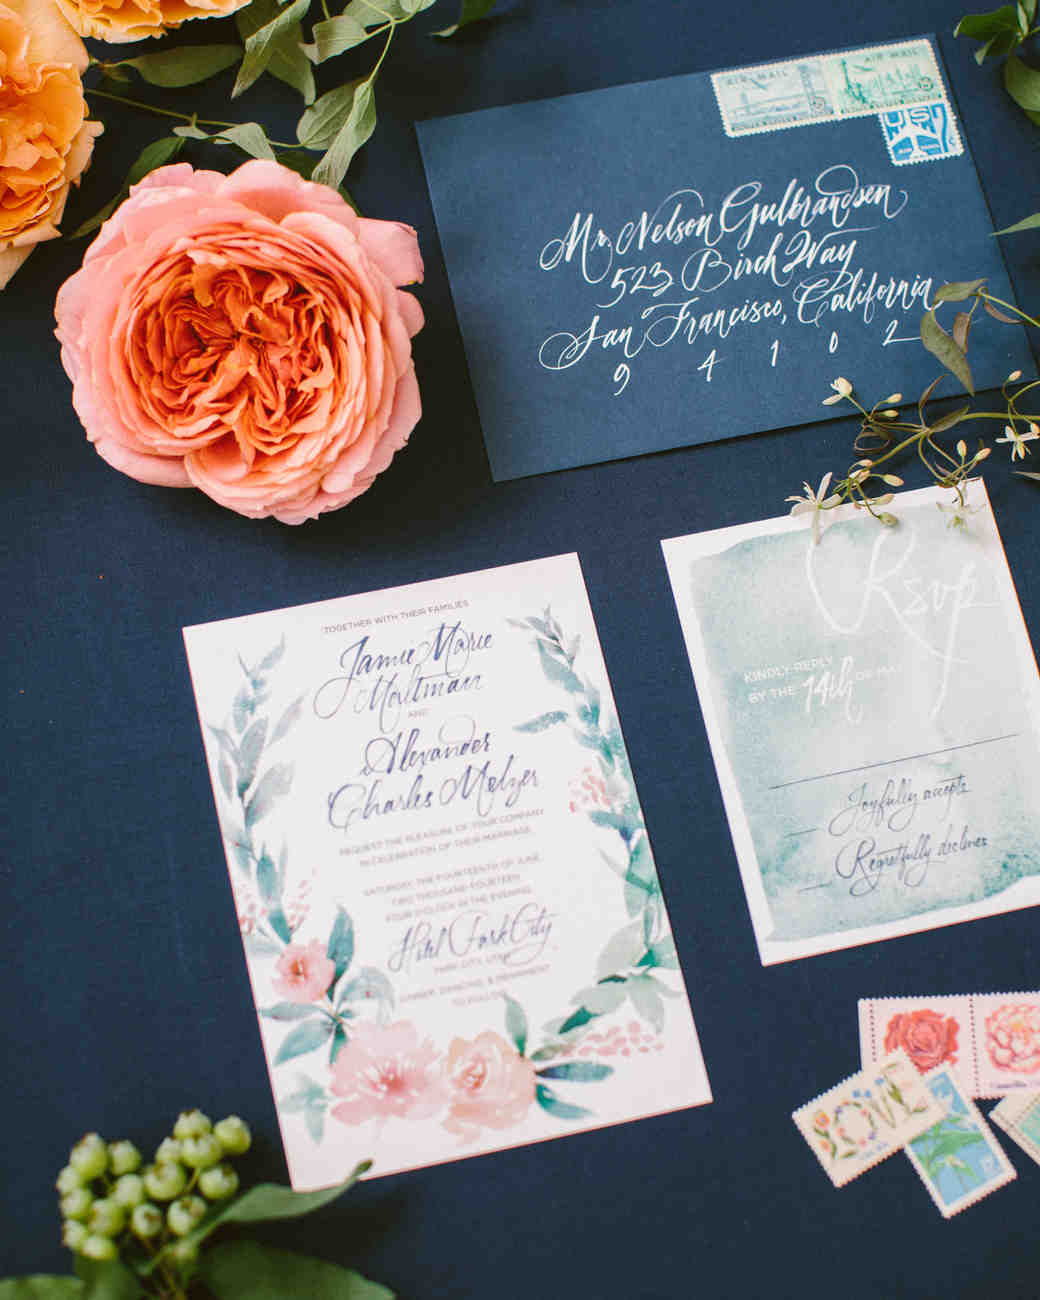 When Do I Send Out Wedding Invites: 10 Things You Should Know Before Mailing Your Wedding